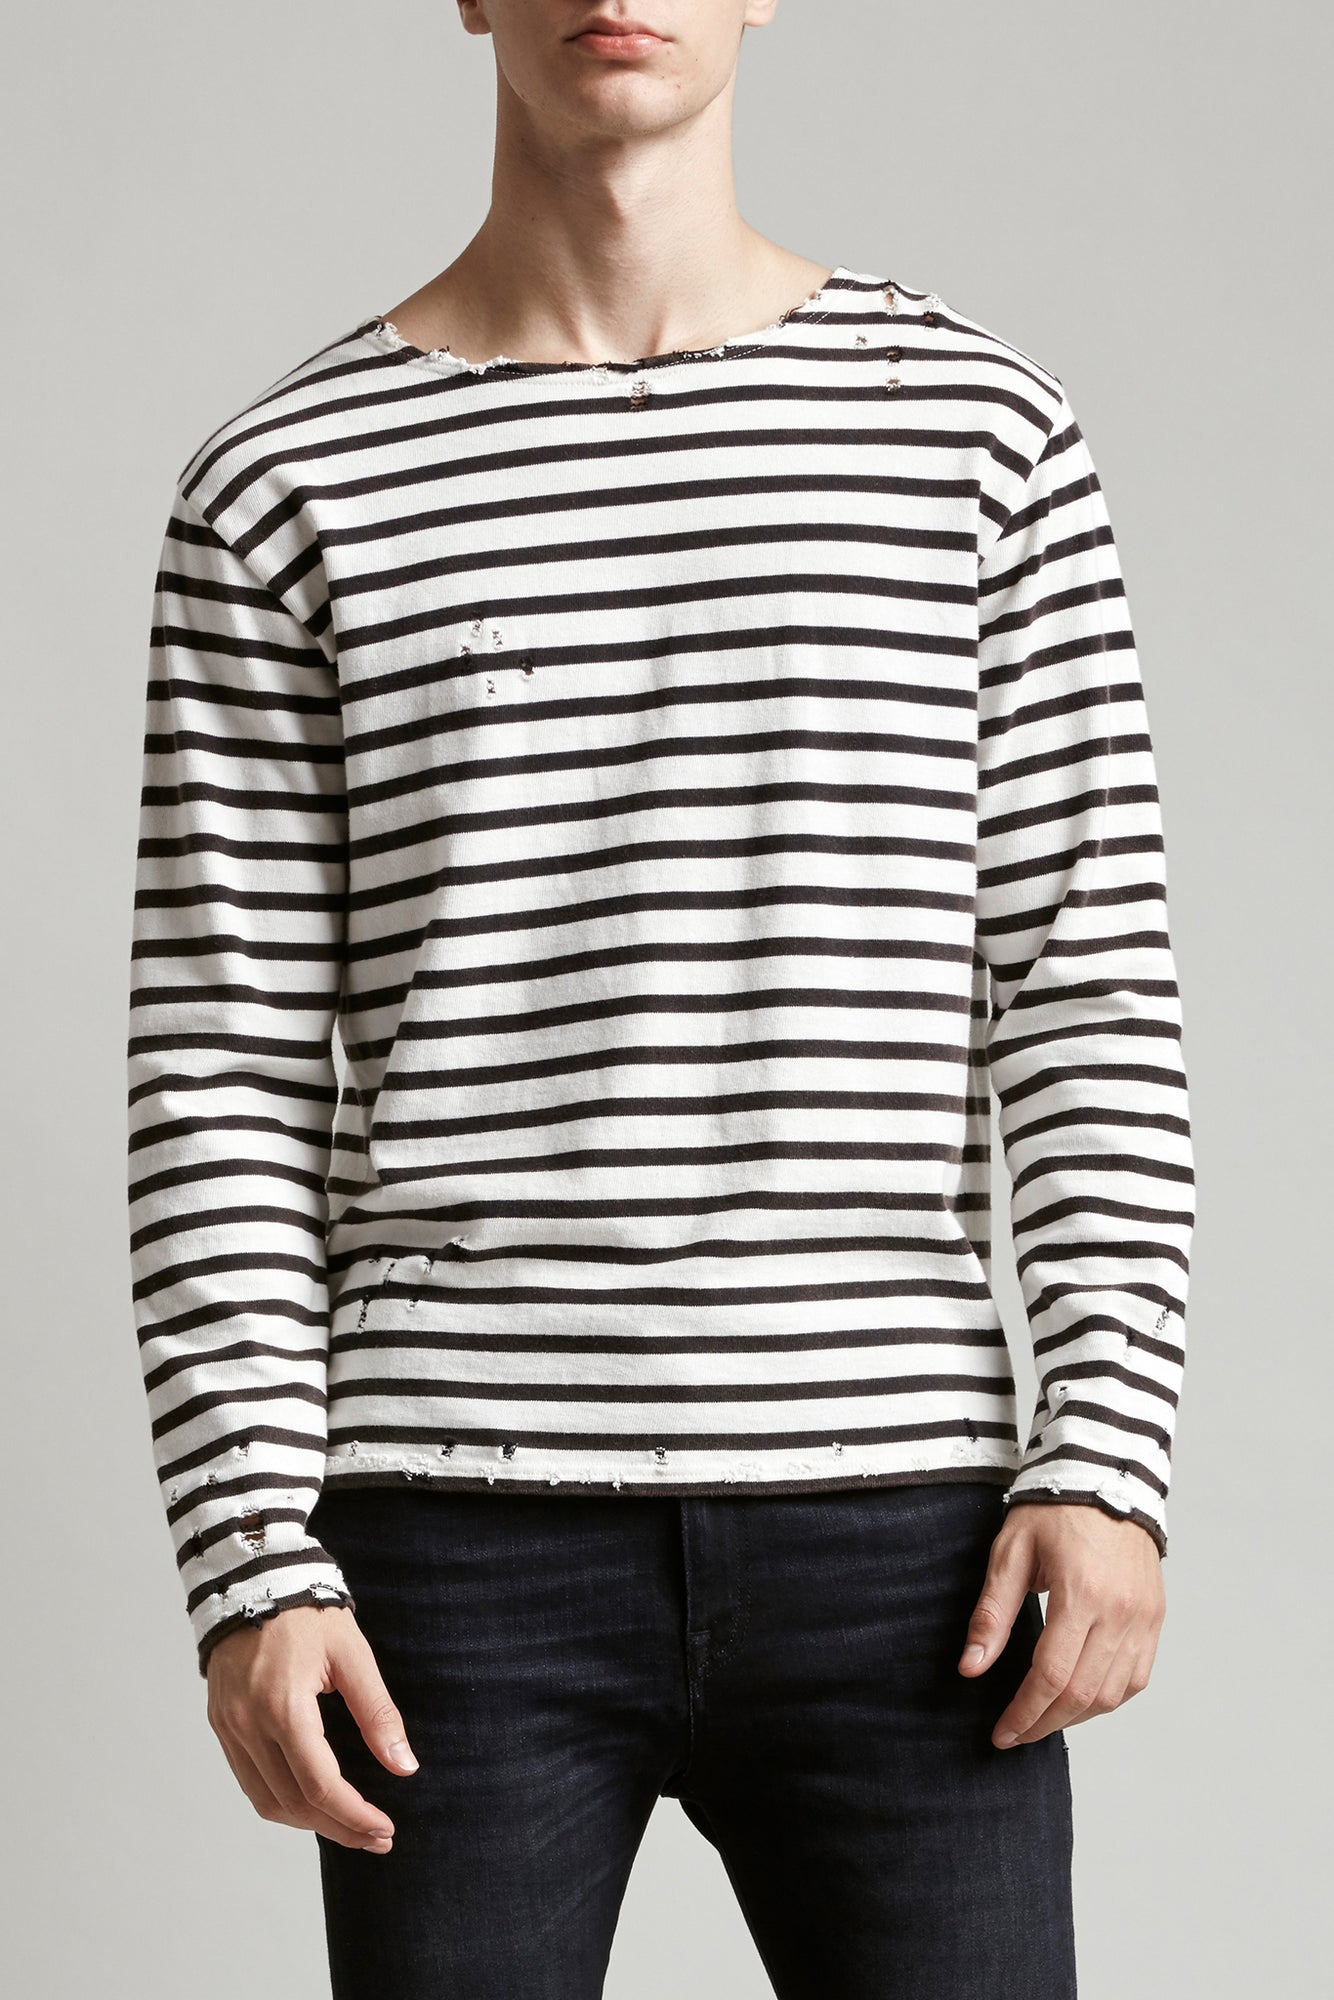 R13 cotton crewneck long sleeved tee with black and white stripes